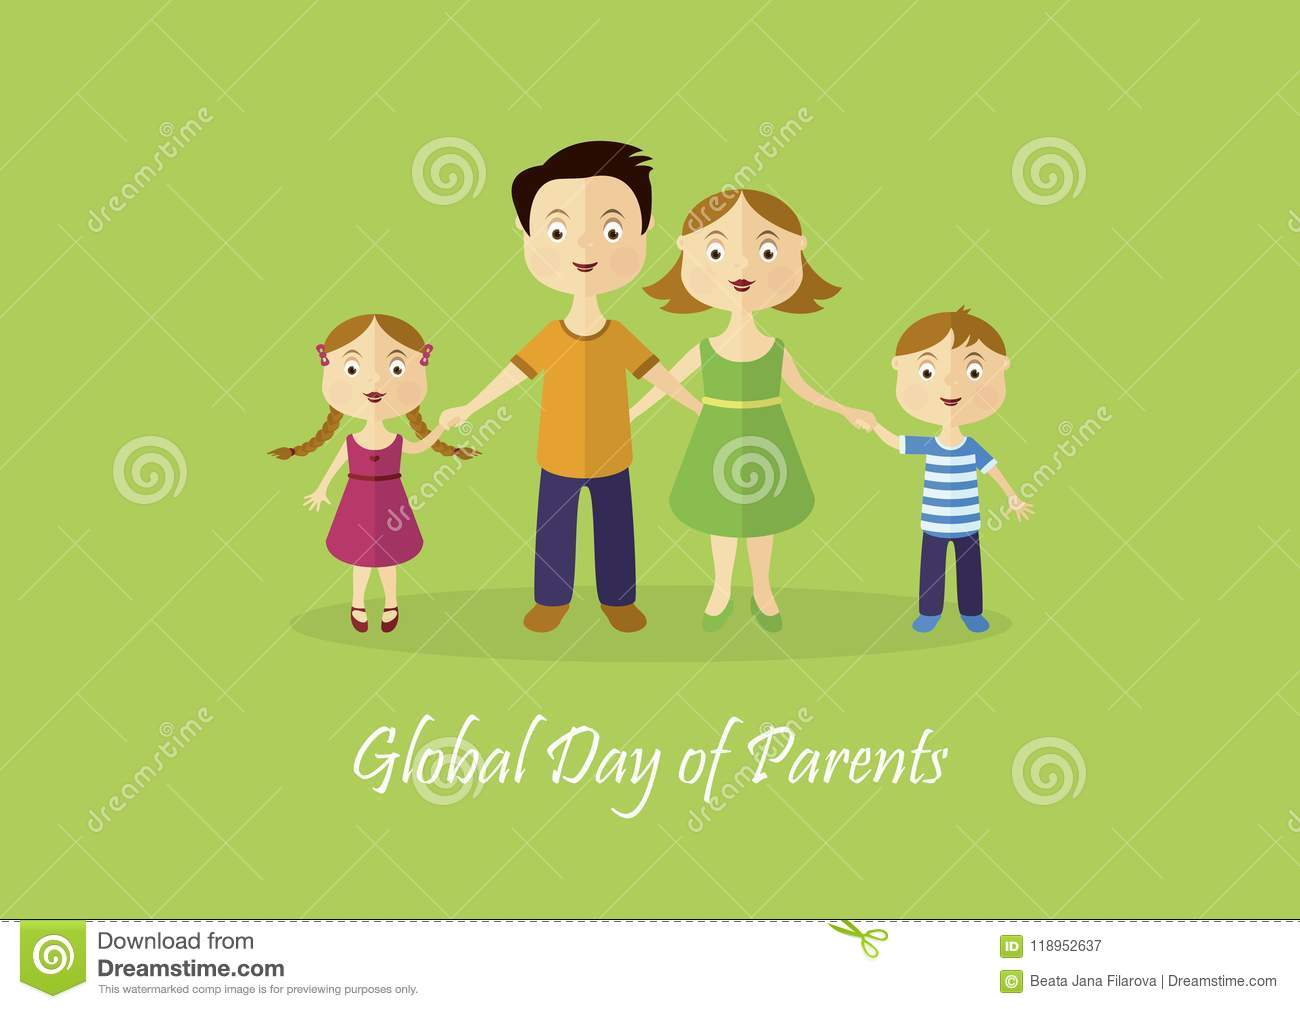 Global Day of Parents vector